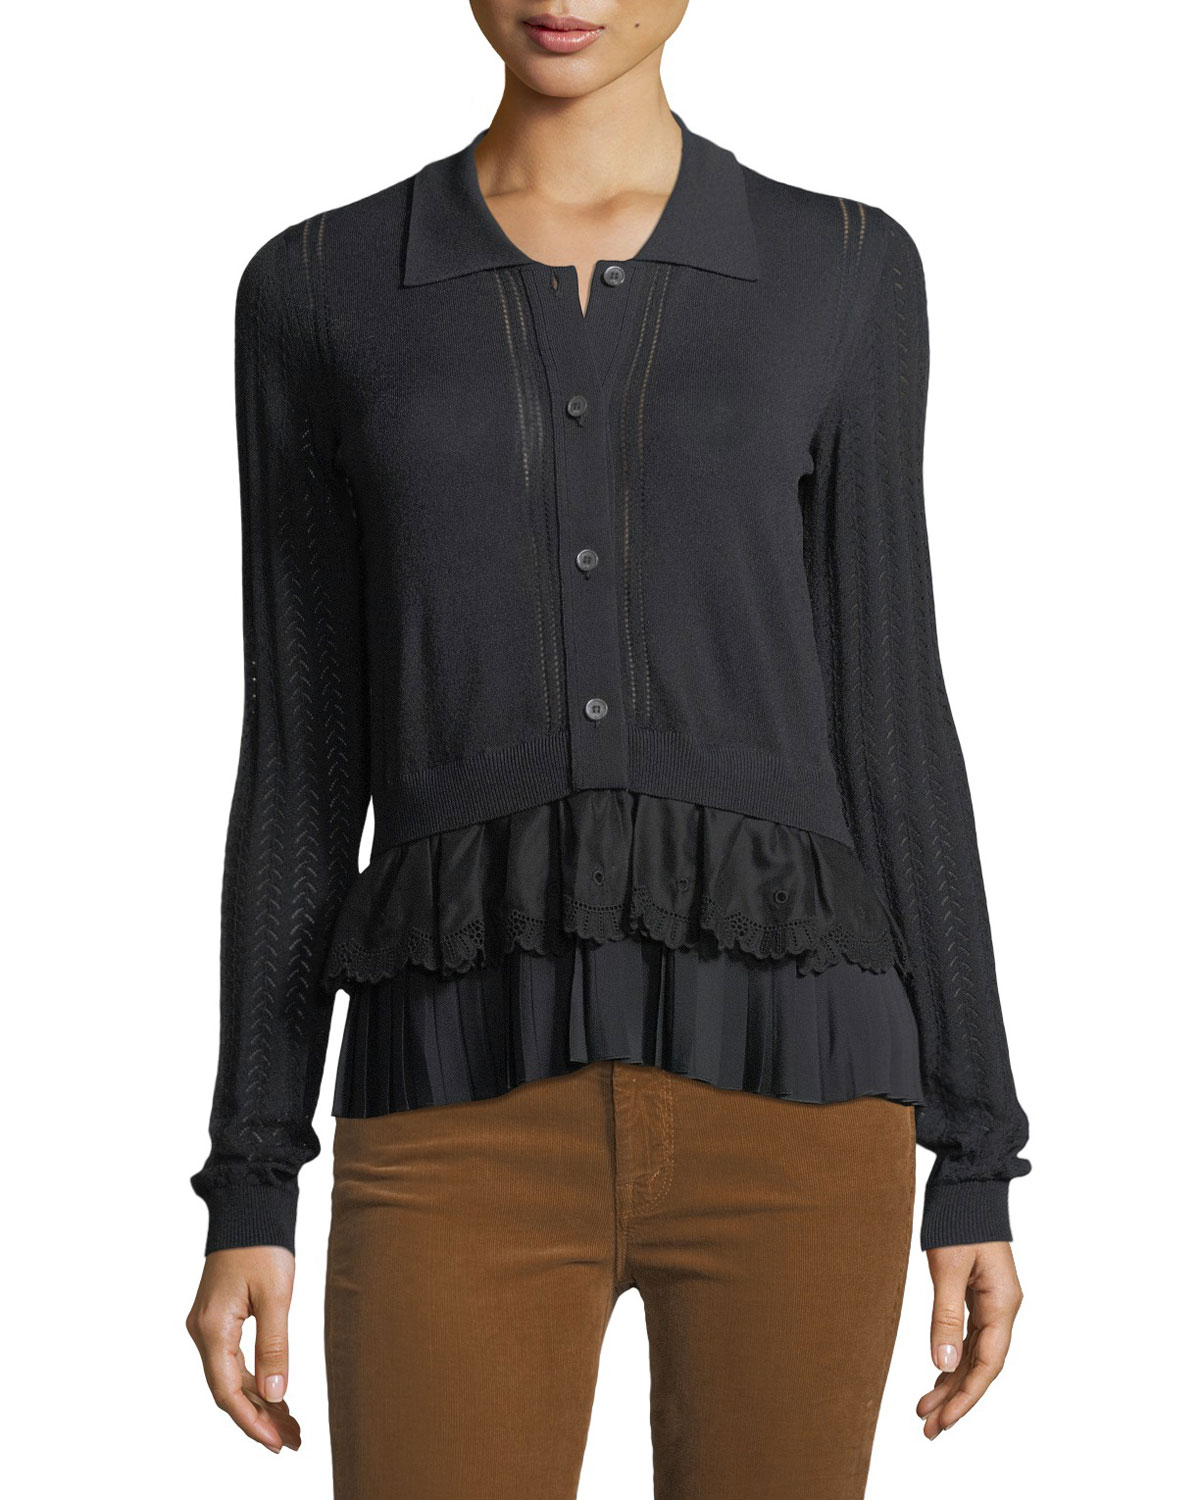 Button-Front Long-Sleeve Mixed-Knit Top with Chiffon Ruffle